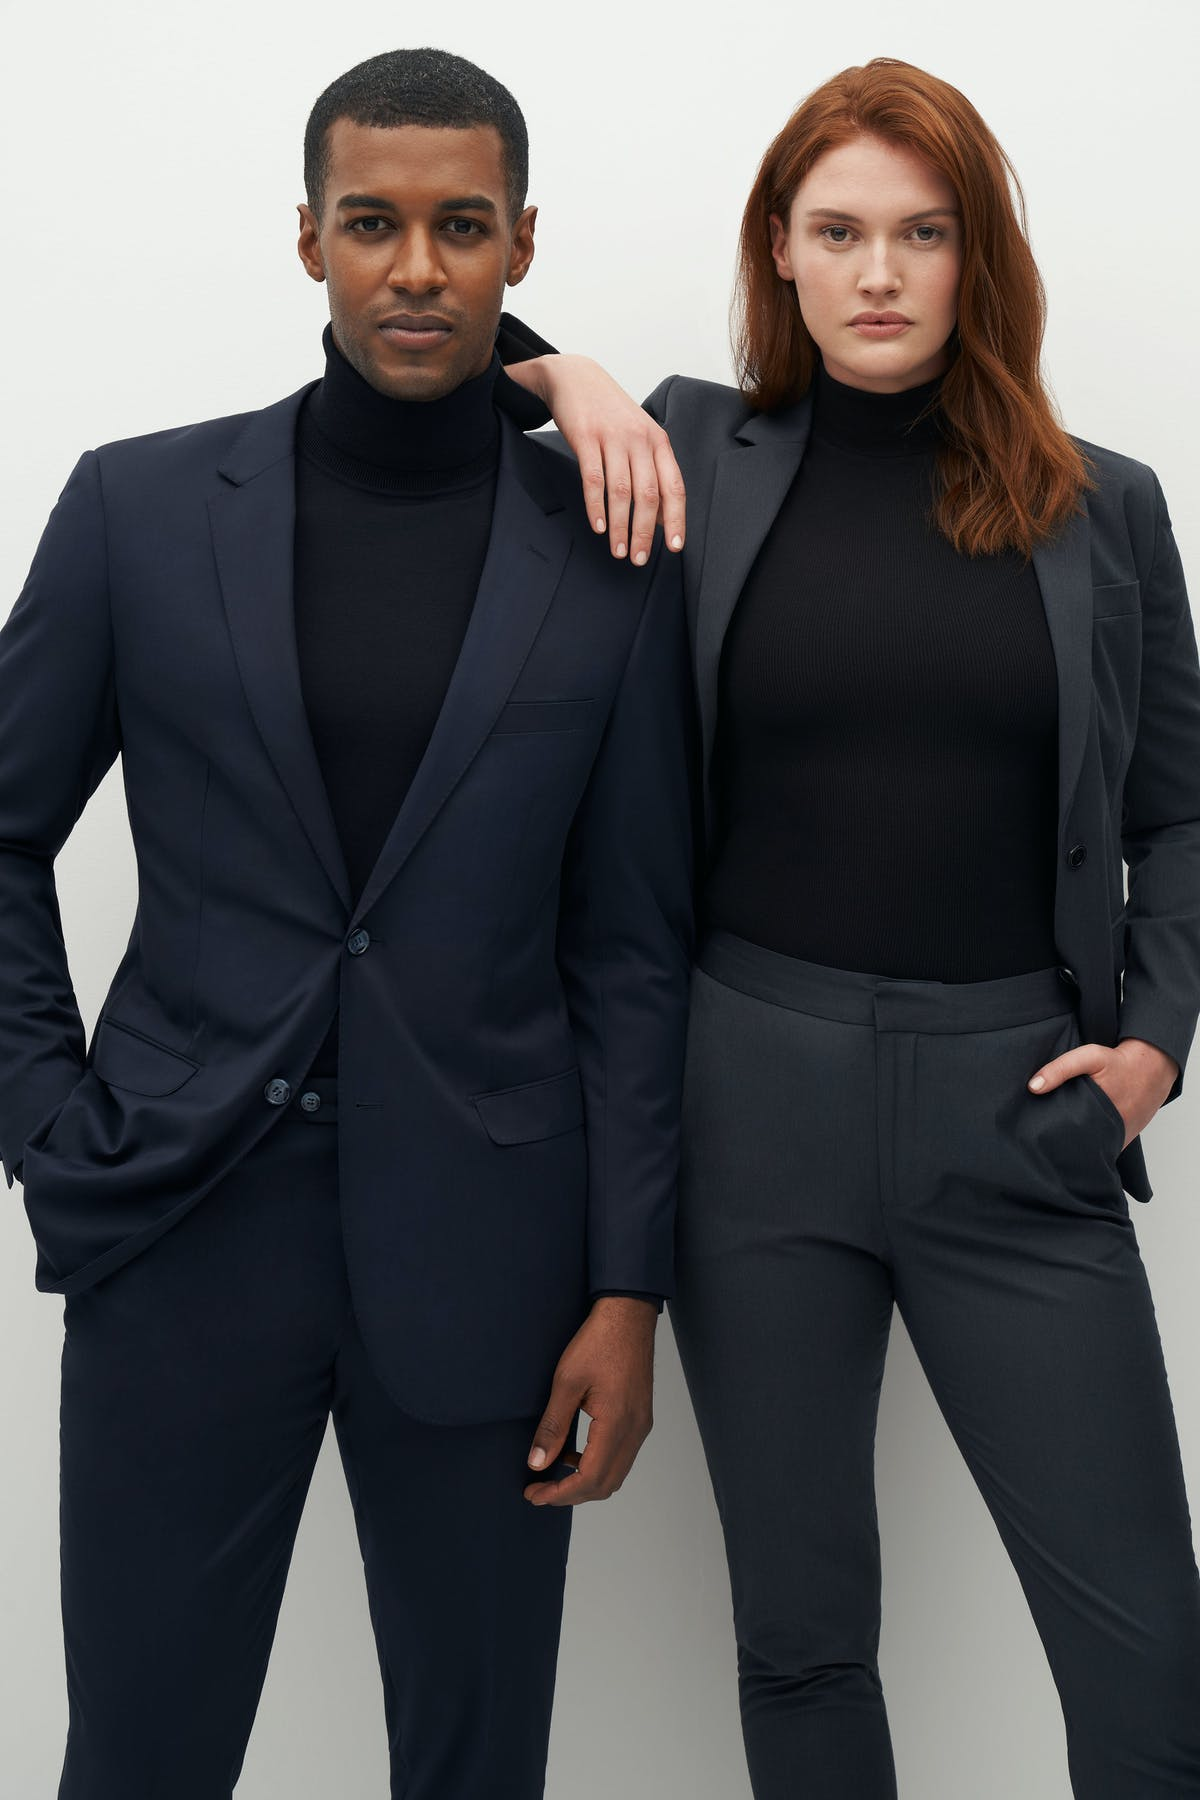 turtlenecks and suits